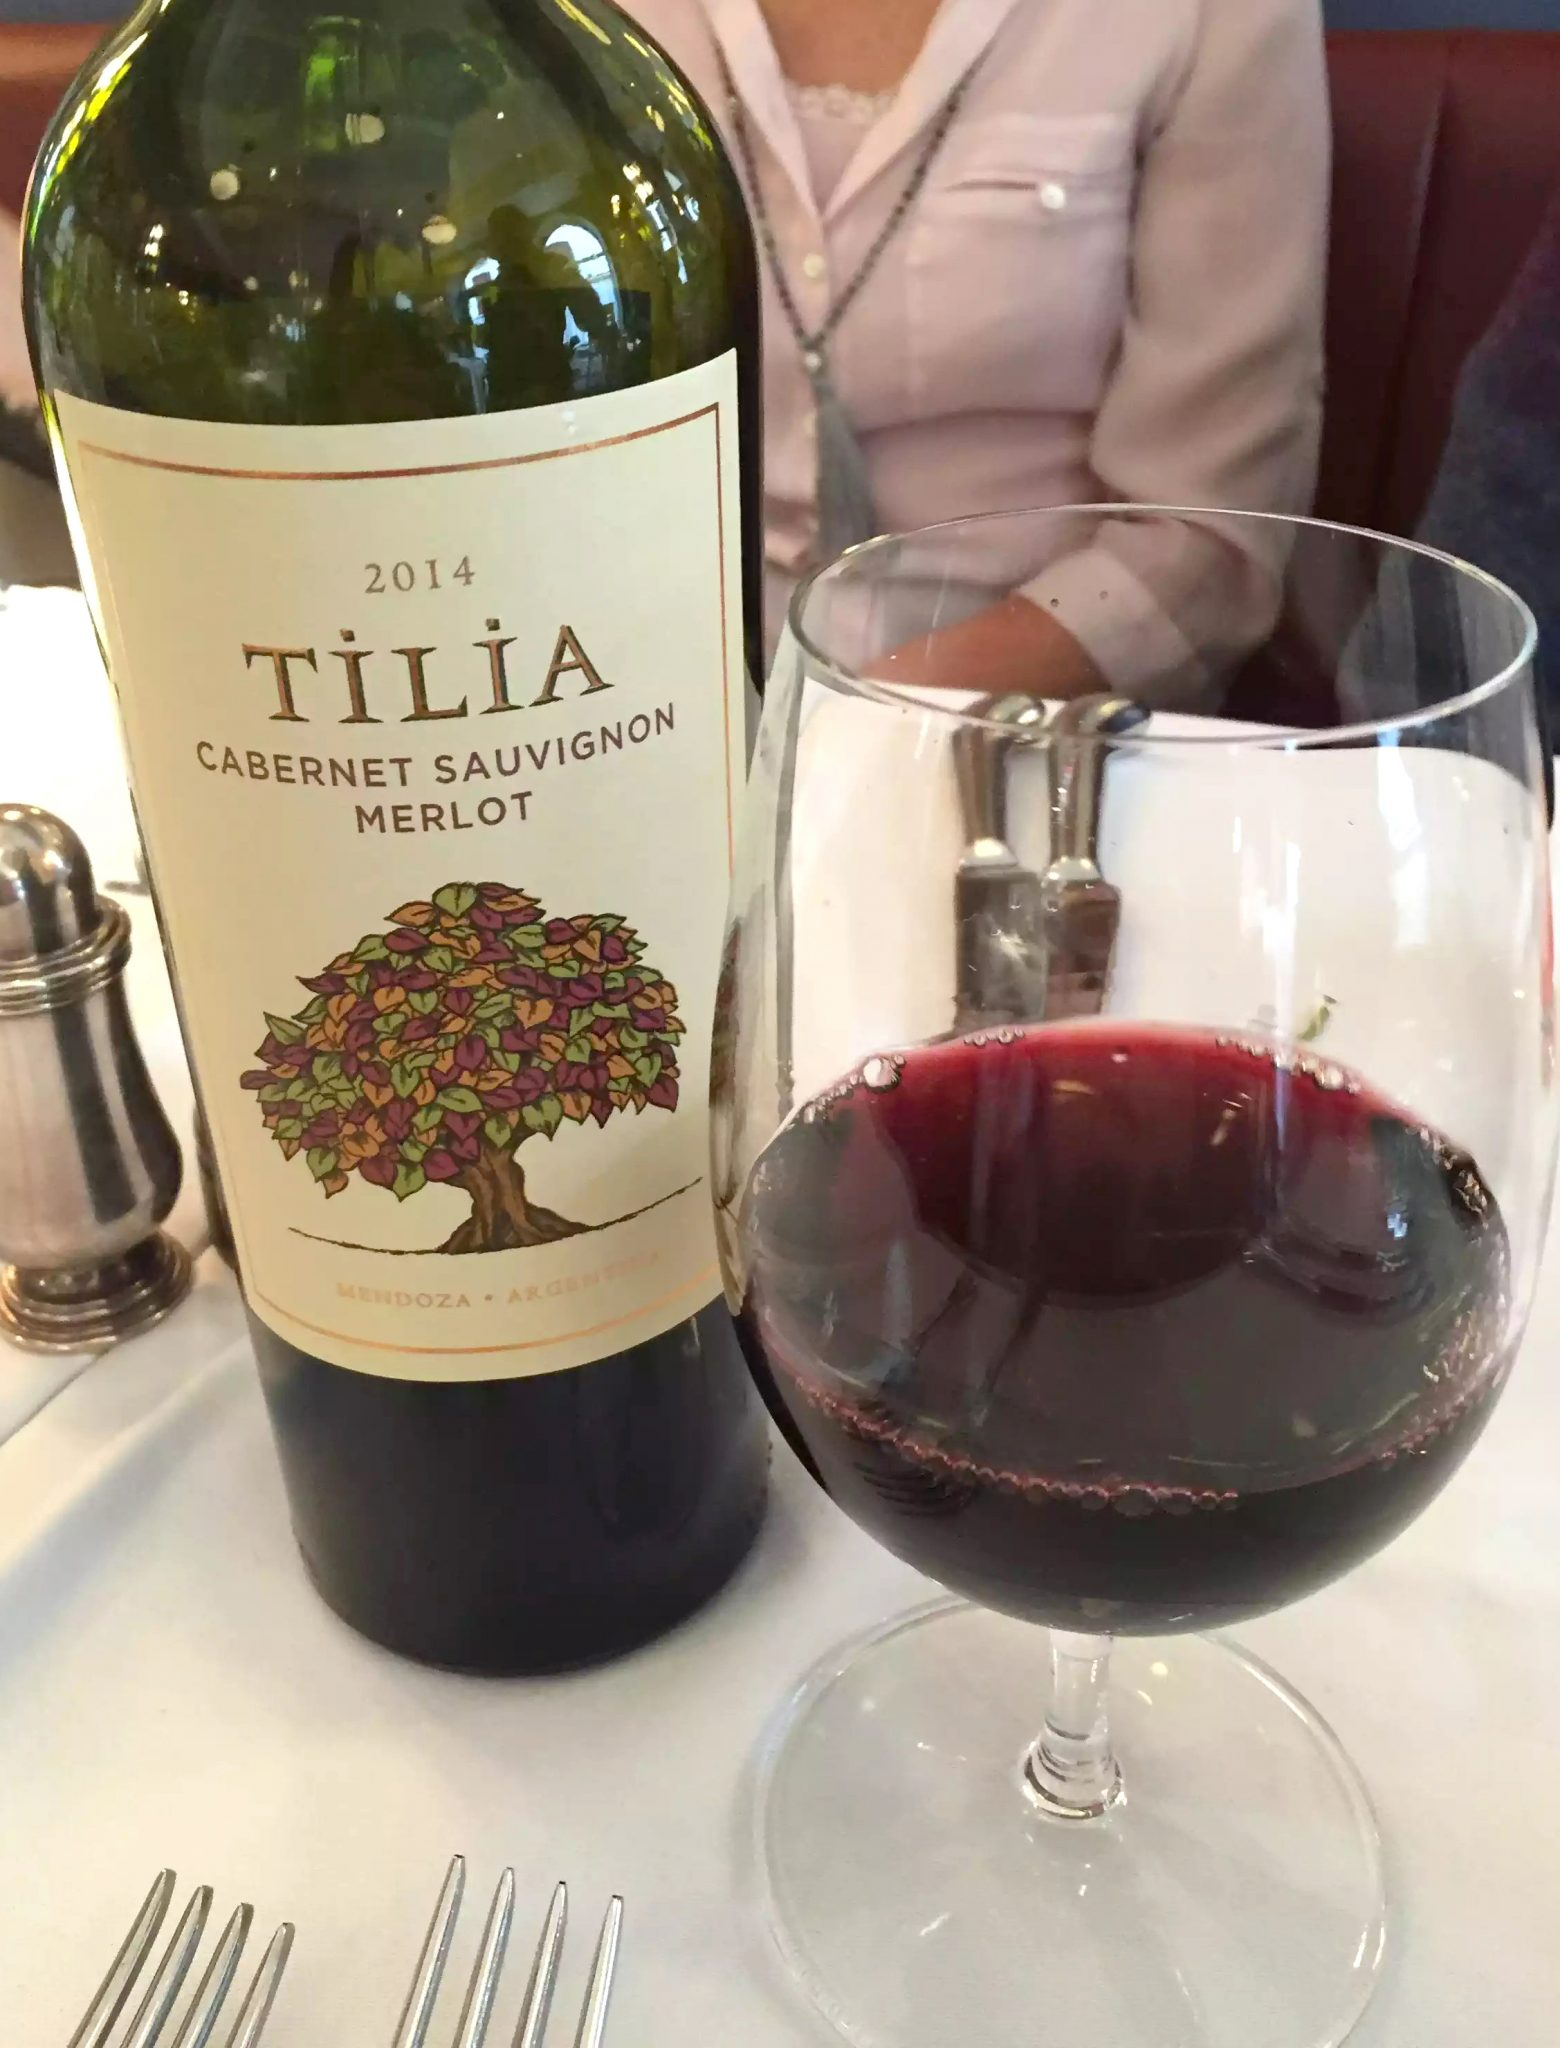 Ivy Cafe Restaurant Review Marylebone London Lunch Red Wine Cabernet Sauvignon Merlot Tilia Argentina